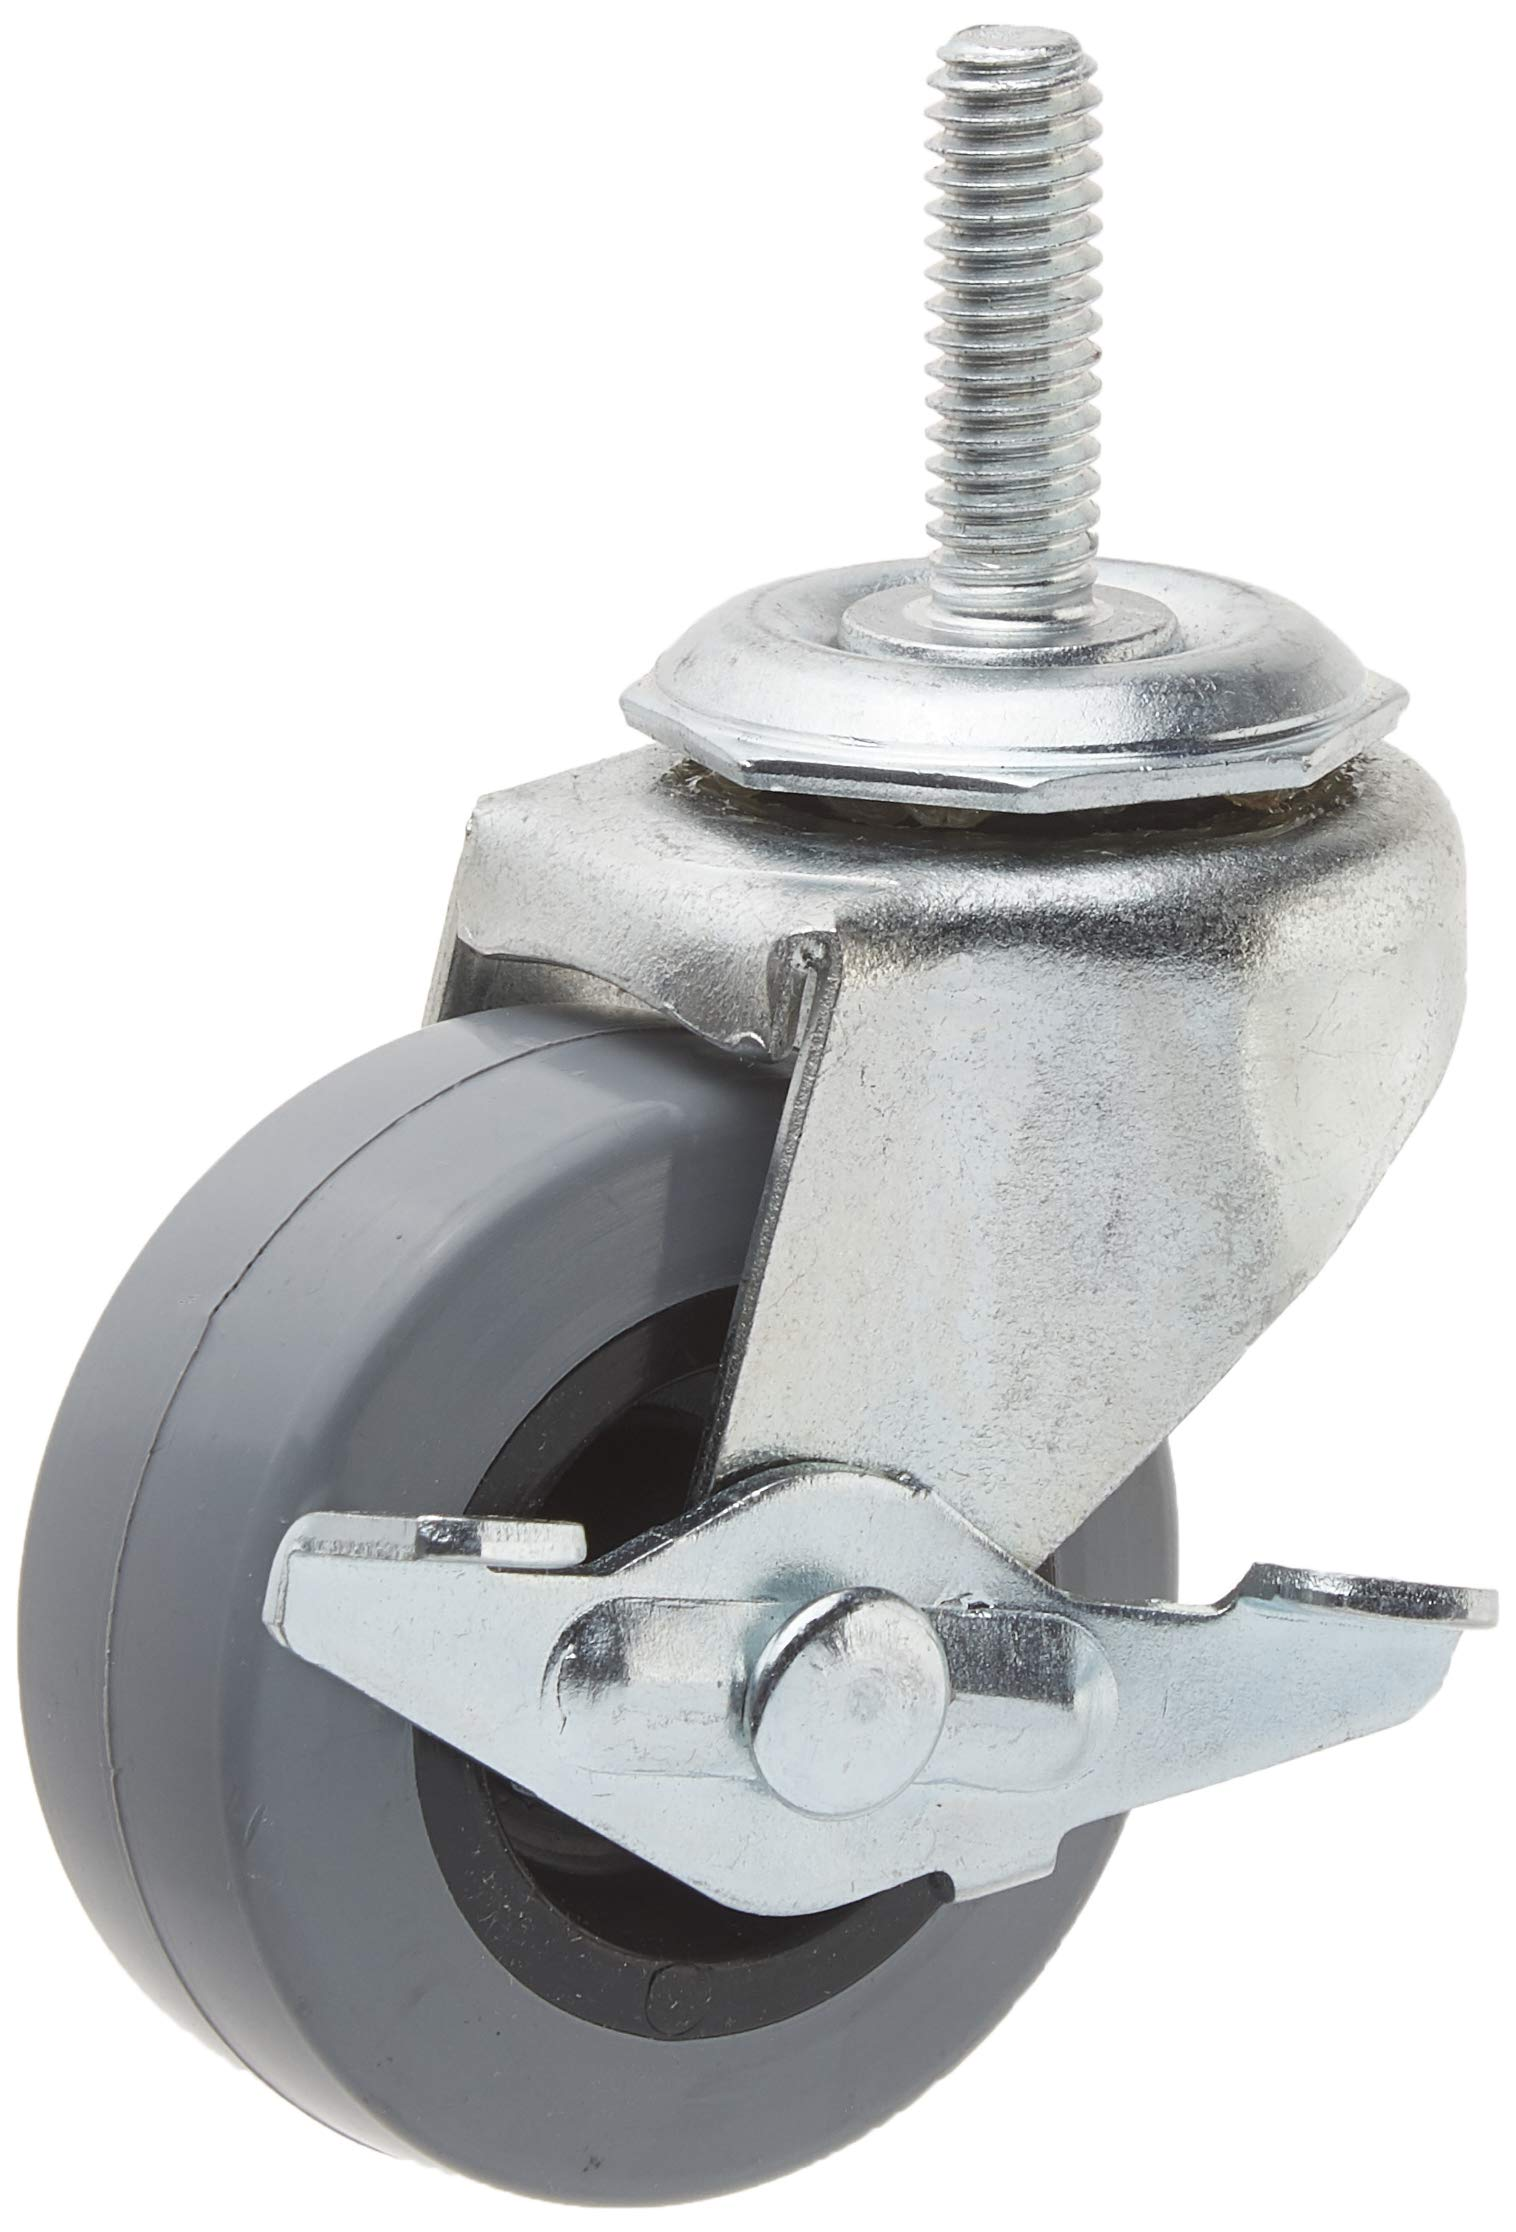 Service Caster PRE20507ZN-TPU-2-TPUB-2 Caster with 5/16'' Threaded Stem, Brake and Non-Marking Polyurethane Wheel, 2'' Size (Pack of 4) by Service Caster